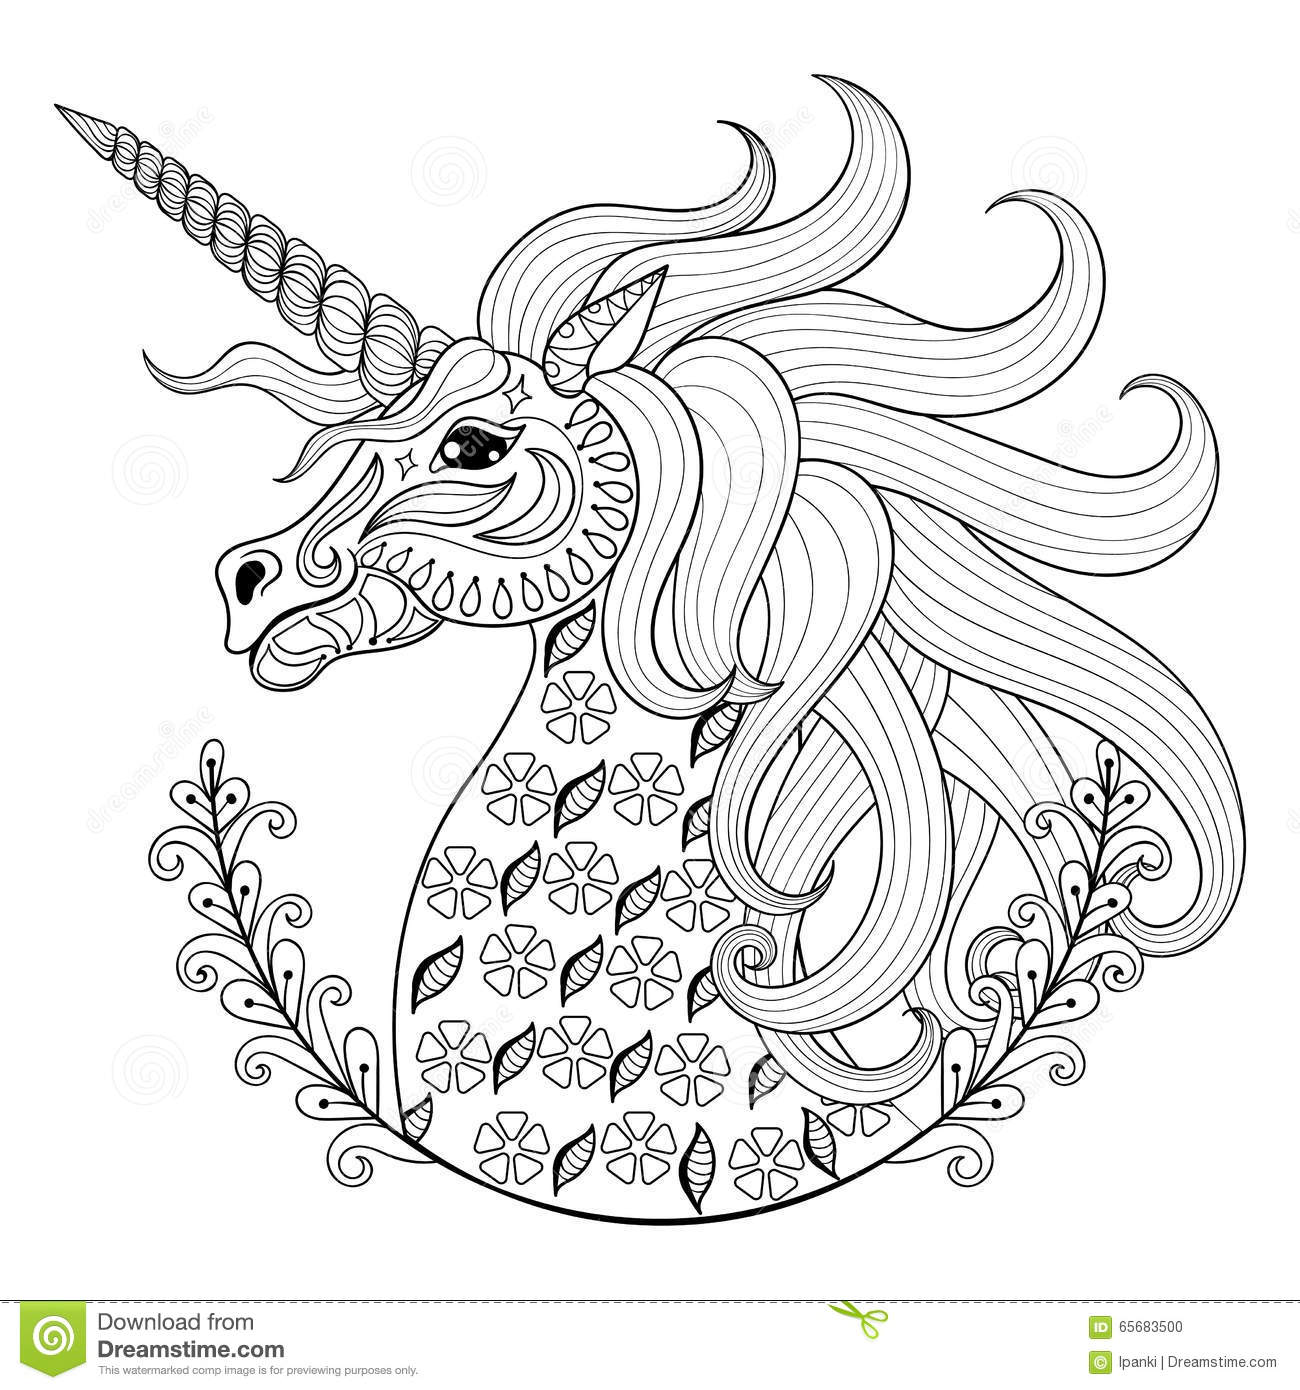 Anti stress colouring pages for adults - Adult Animal Background Coloring